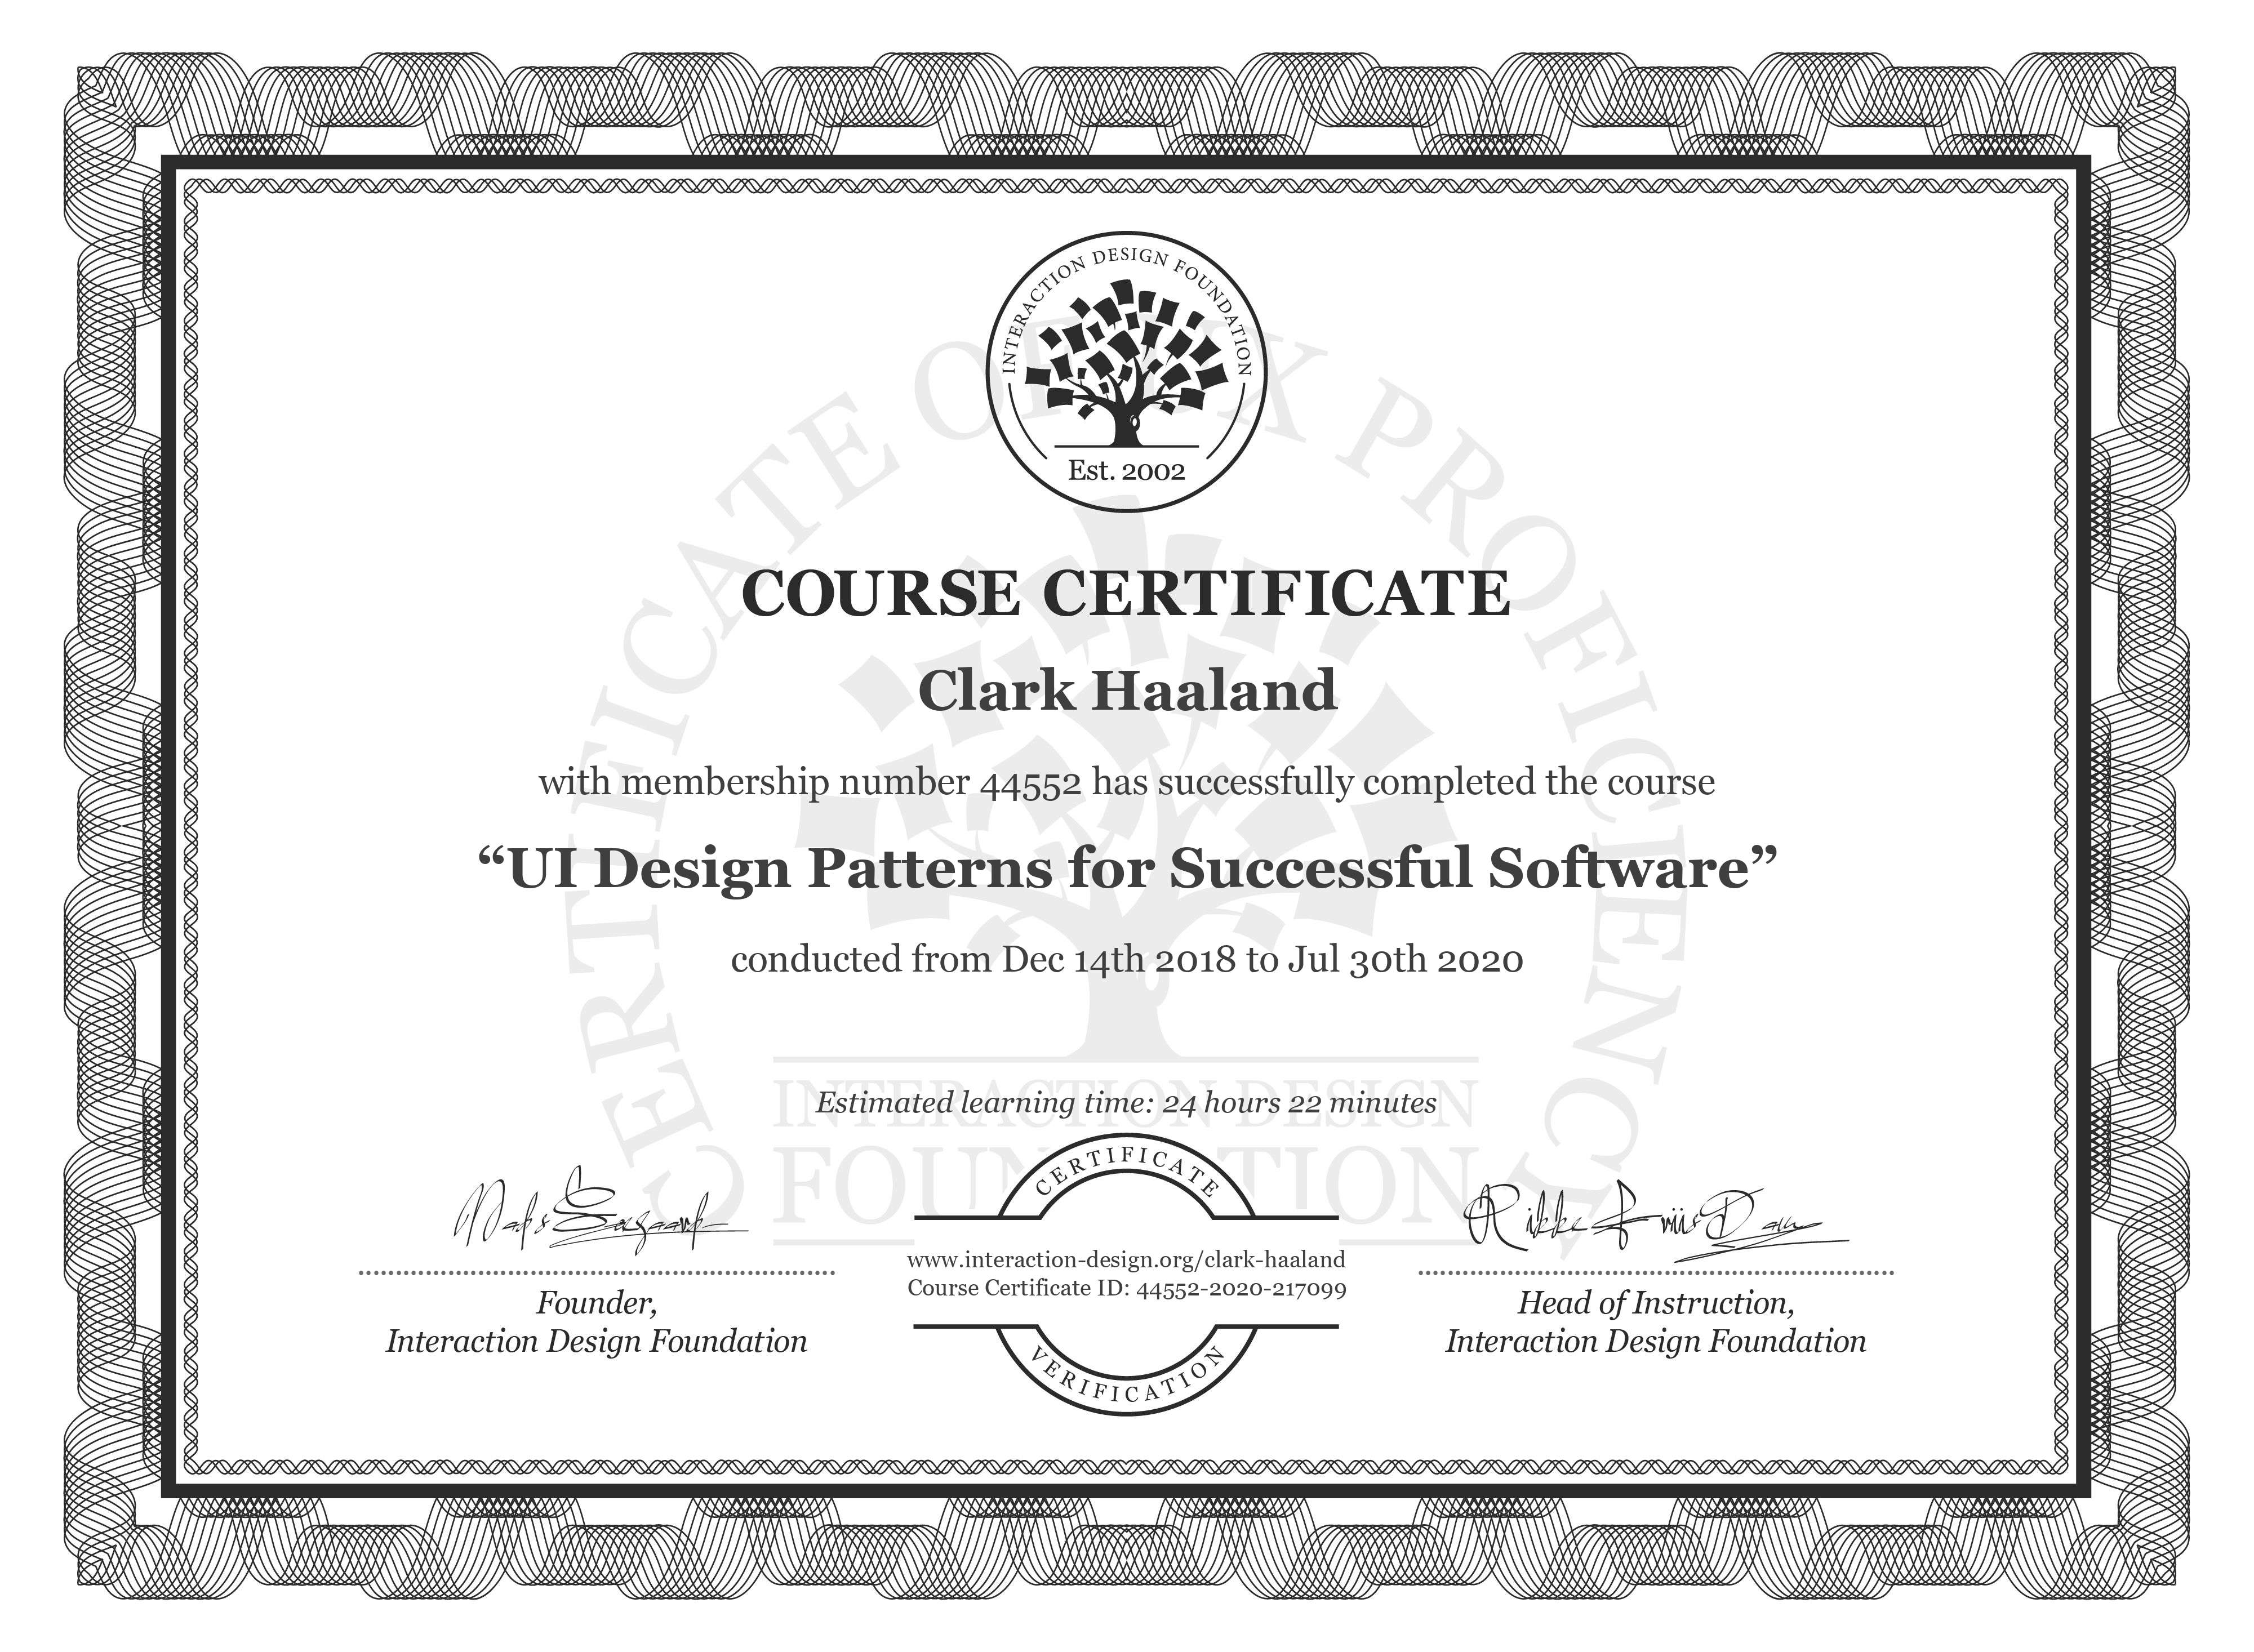 Clark Haaland's Course Certificate: UI Design Patterns for Successful Software